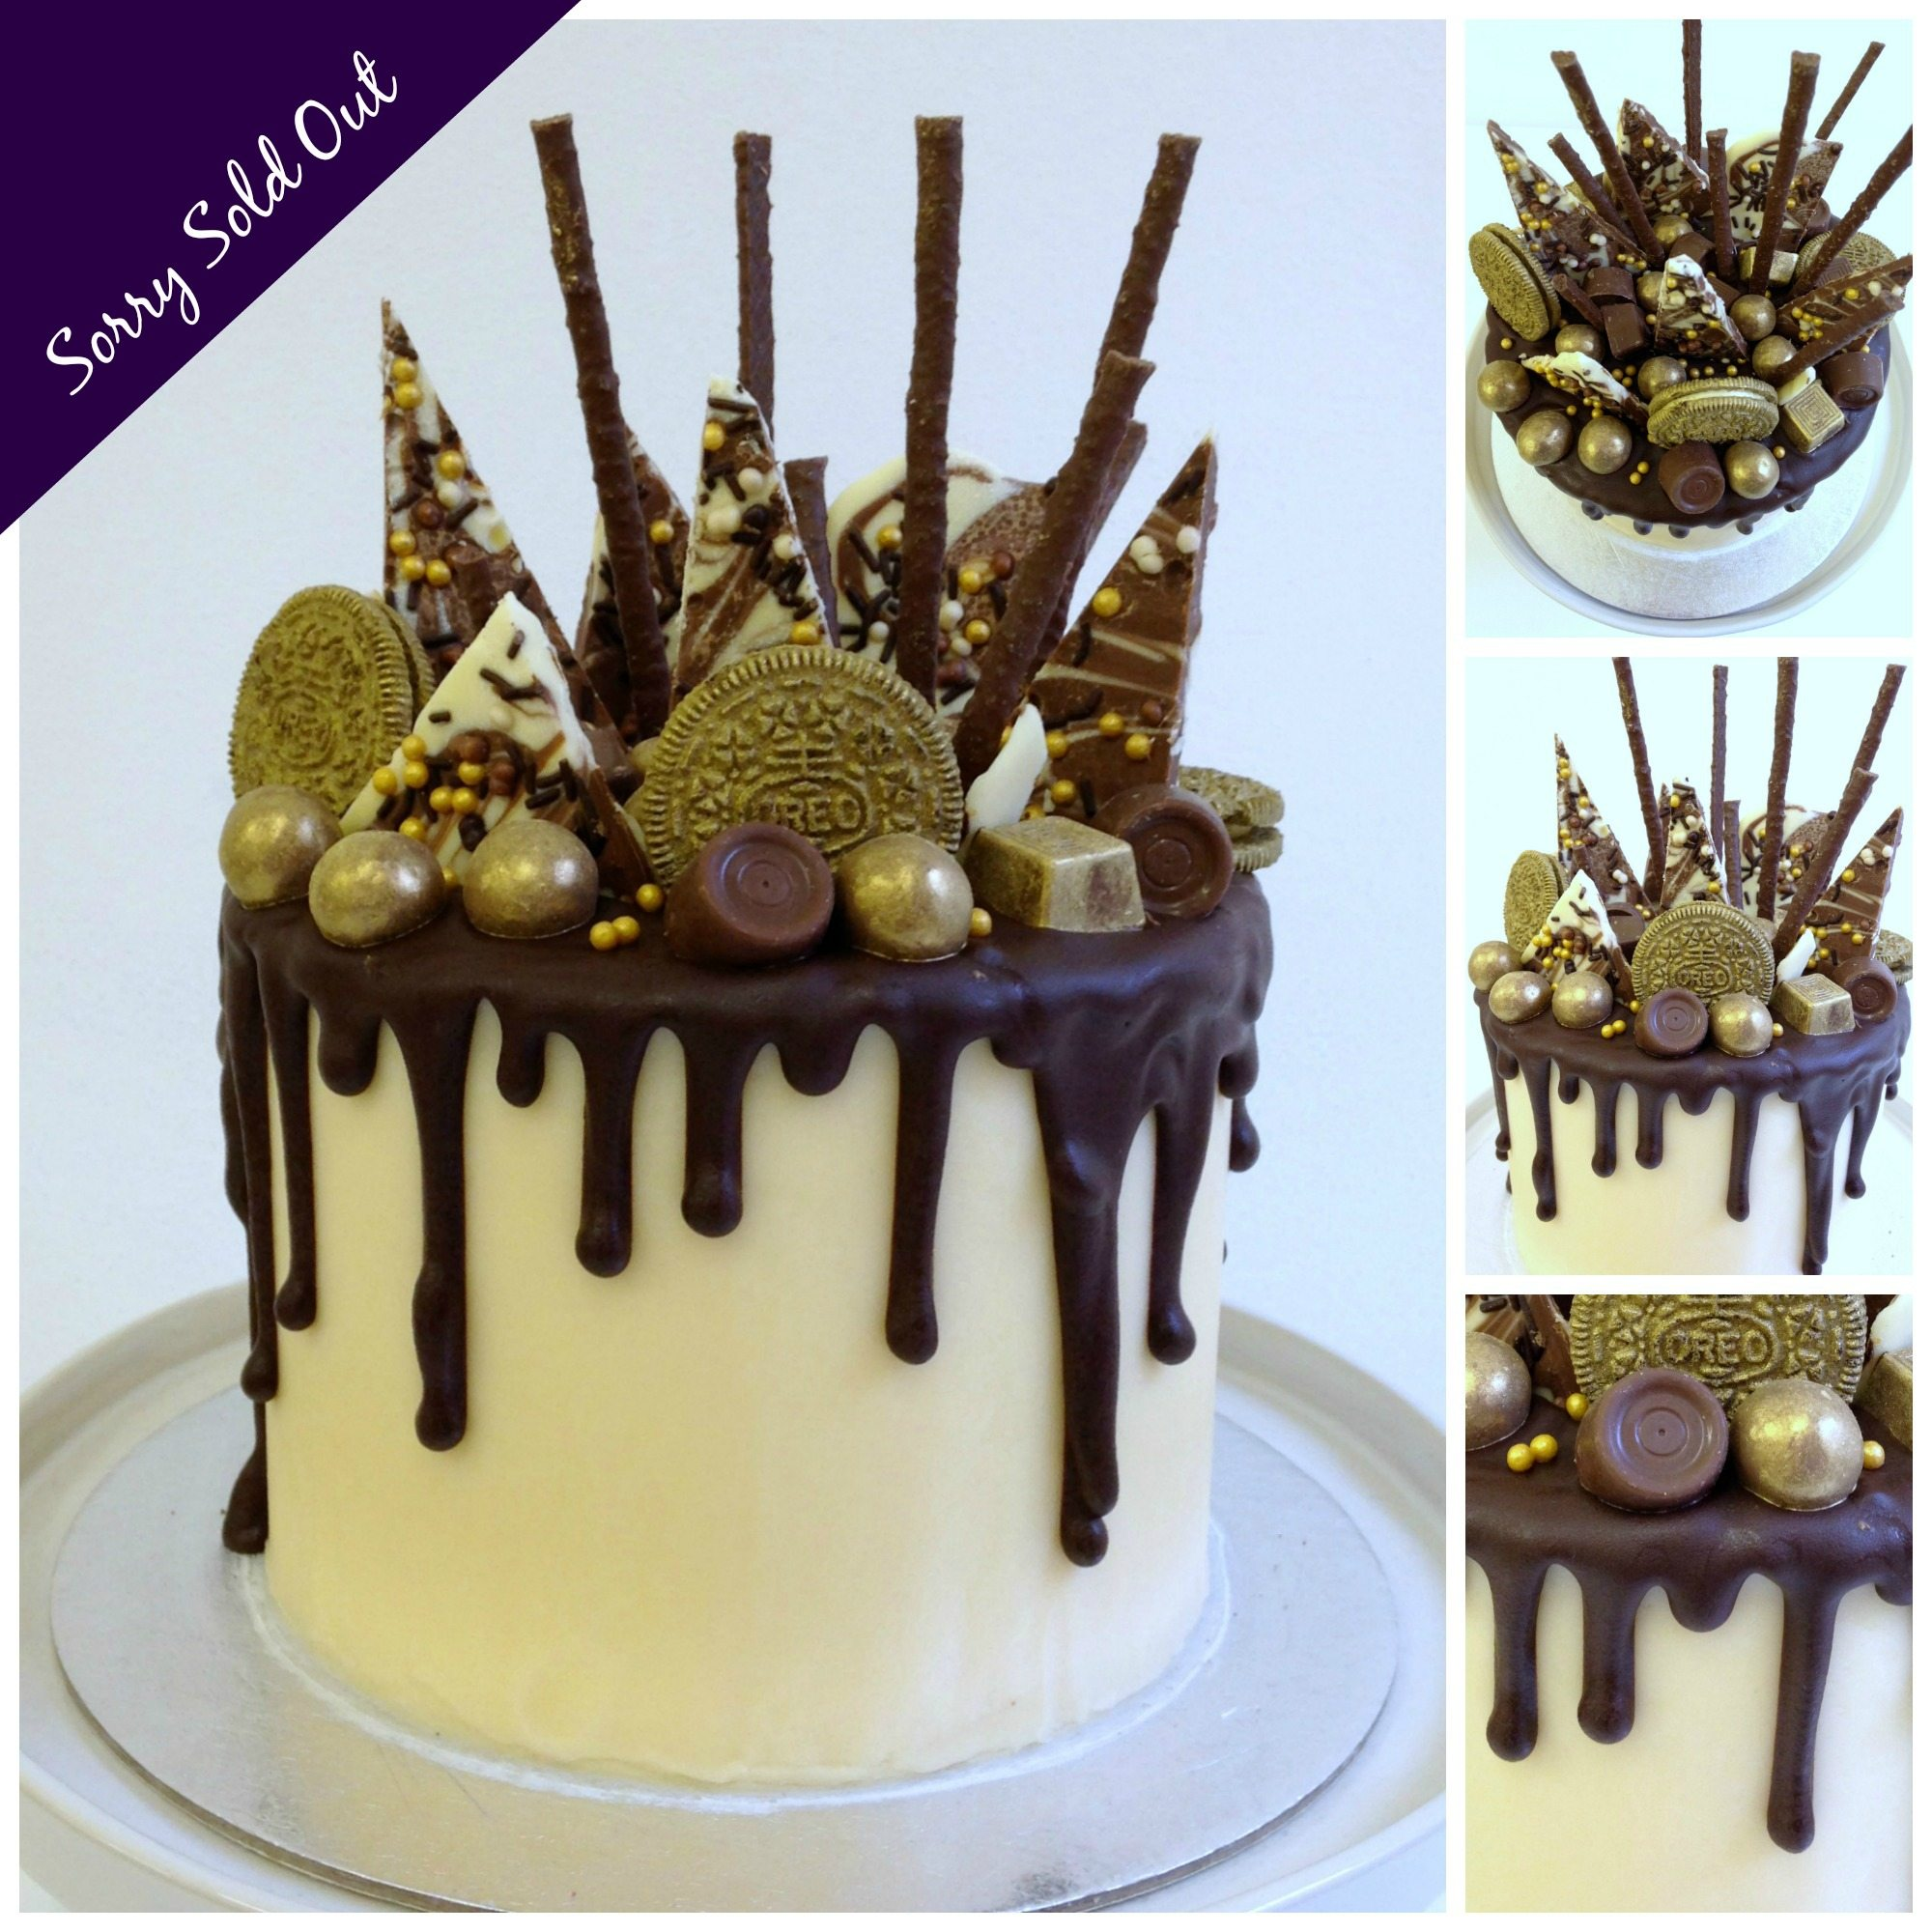 Naked Chocolate Cake Prices Uk